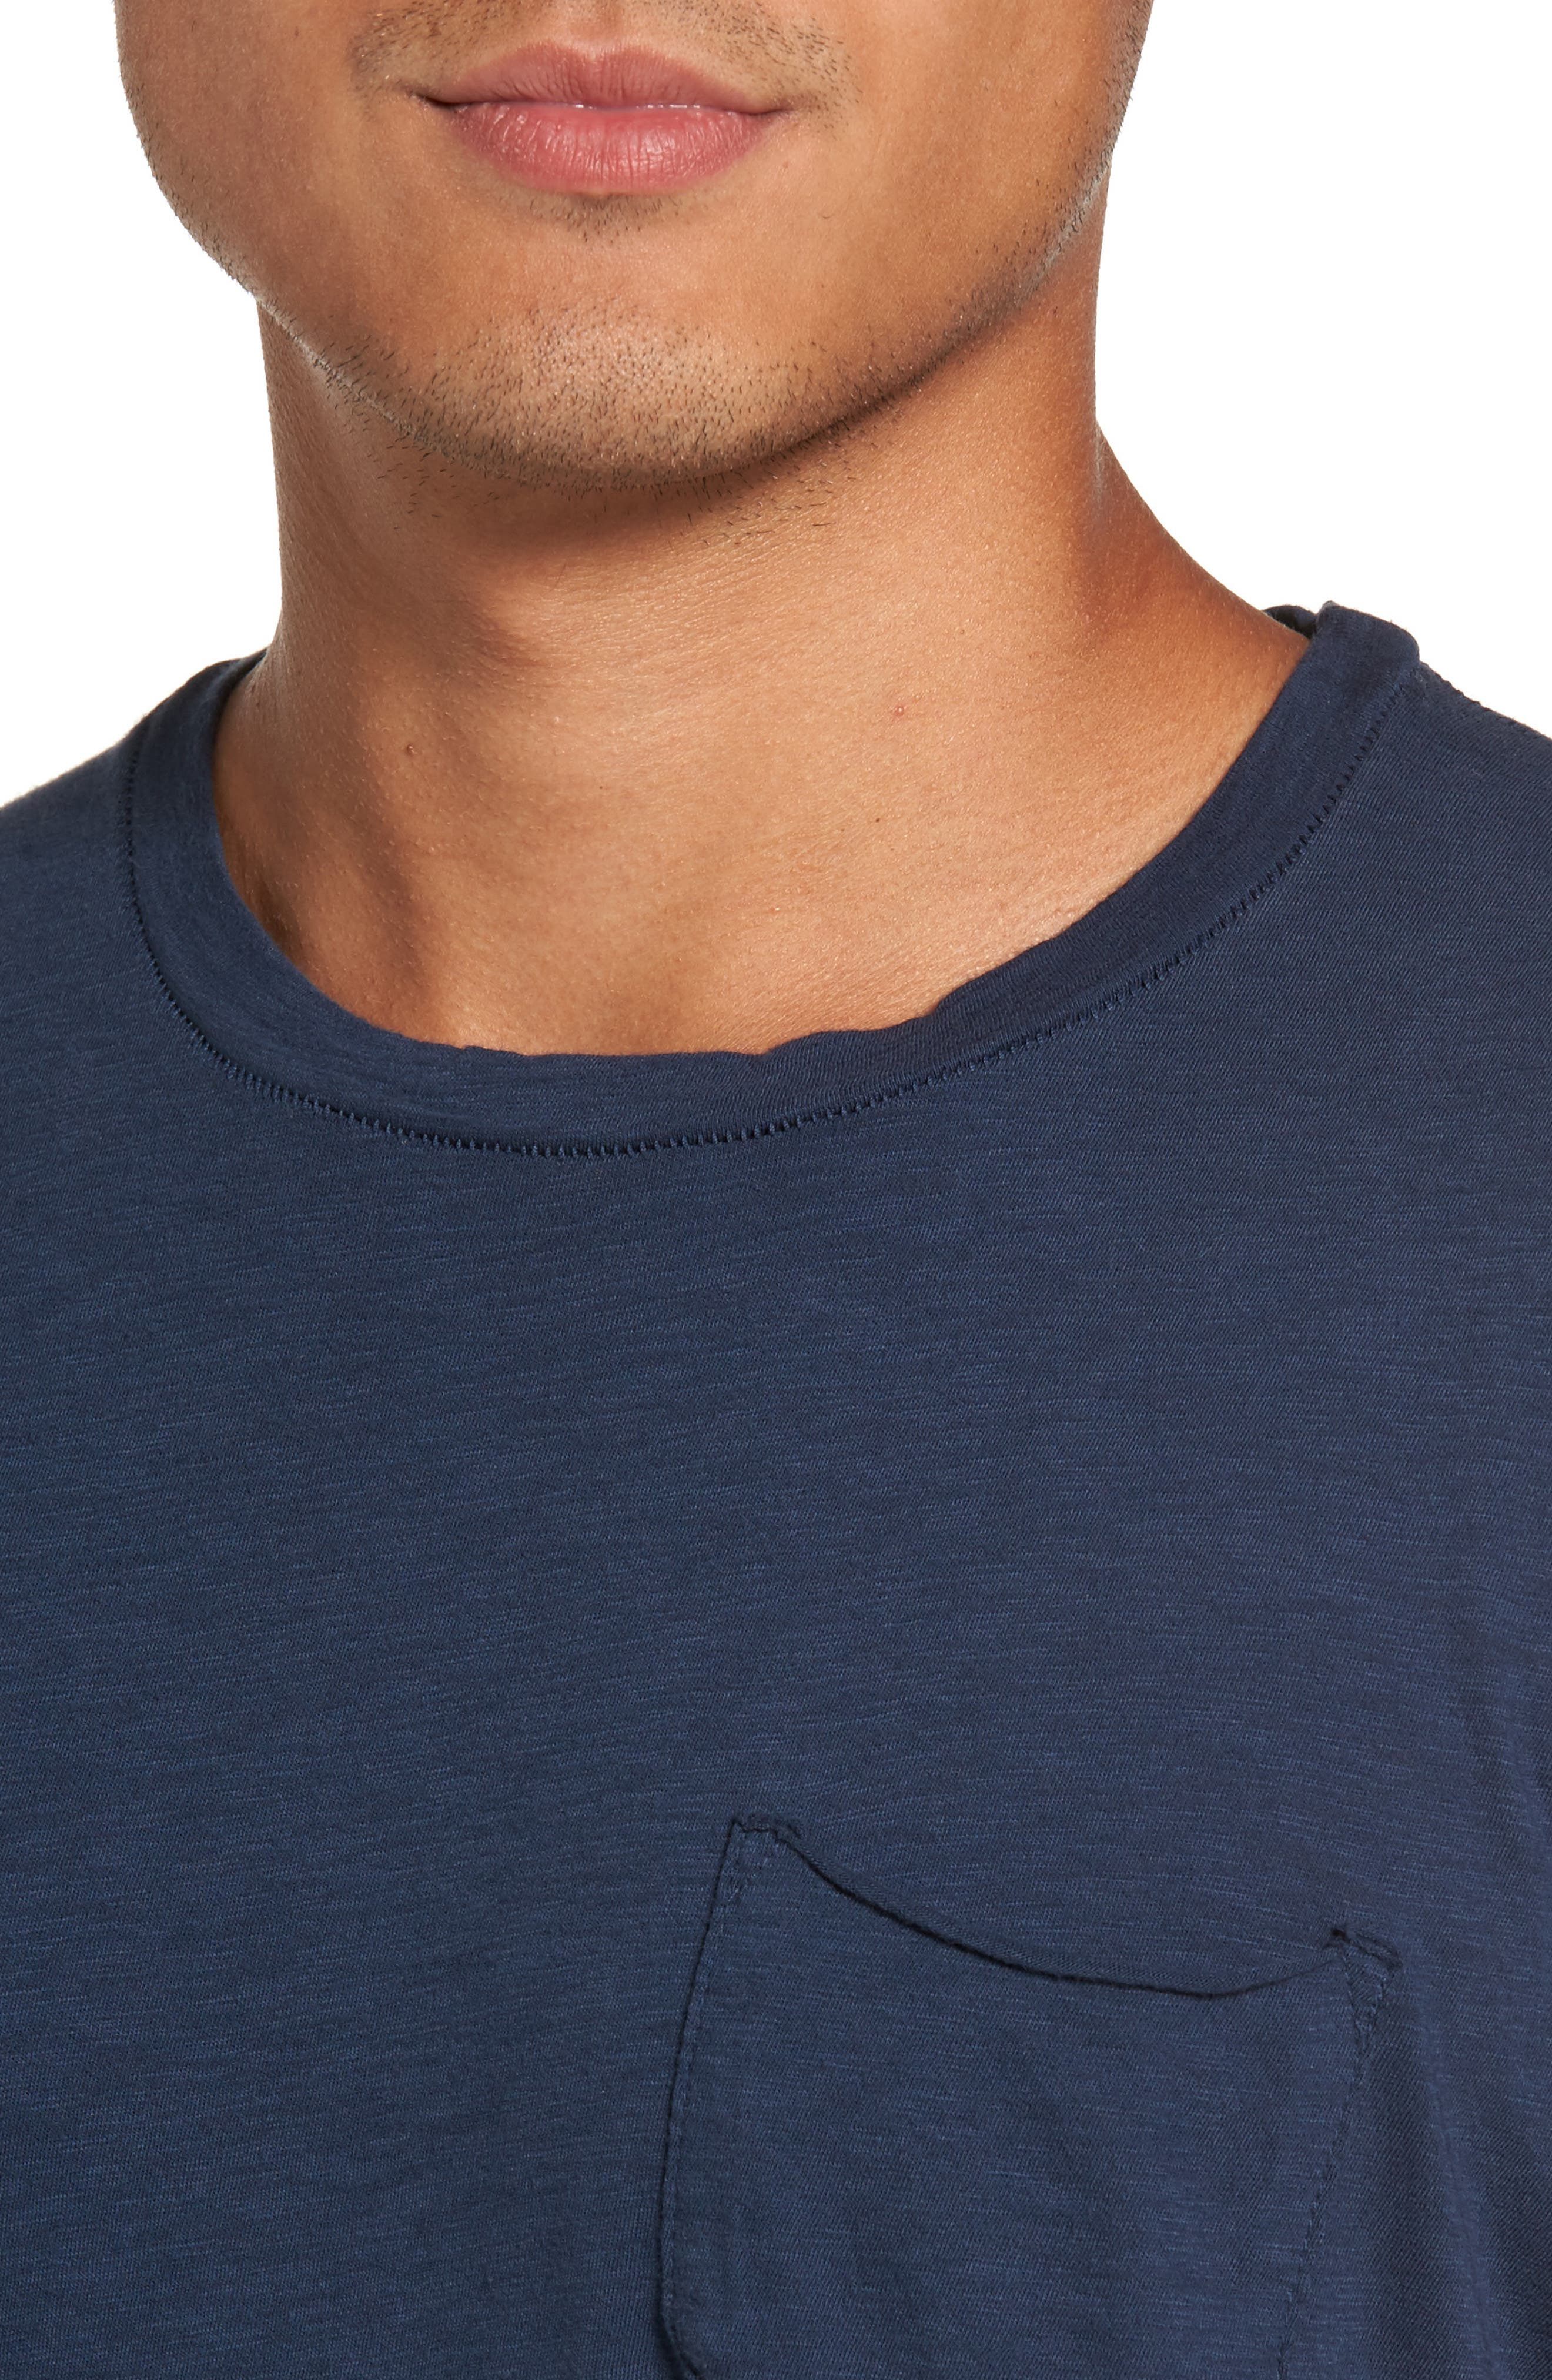 Chase Classic Crewneck T-Shirt,                             Alternate thumbnail 4, color,                             Navy